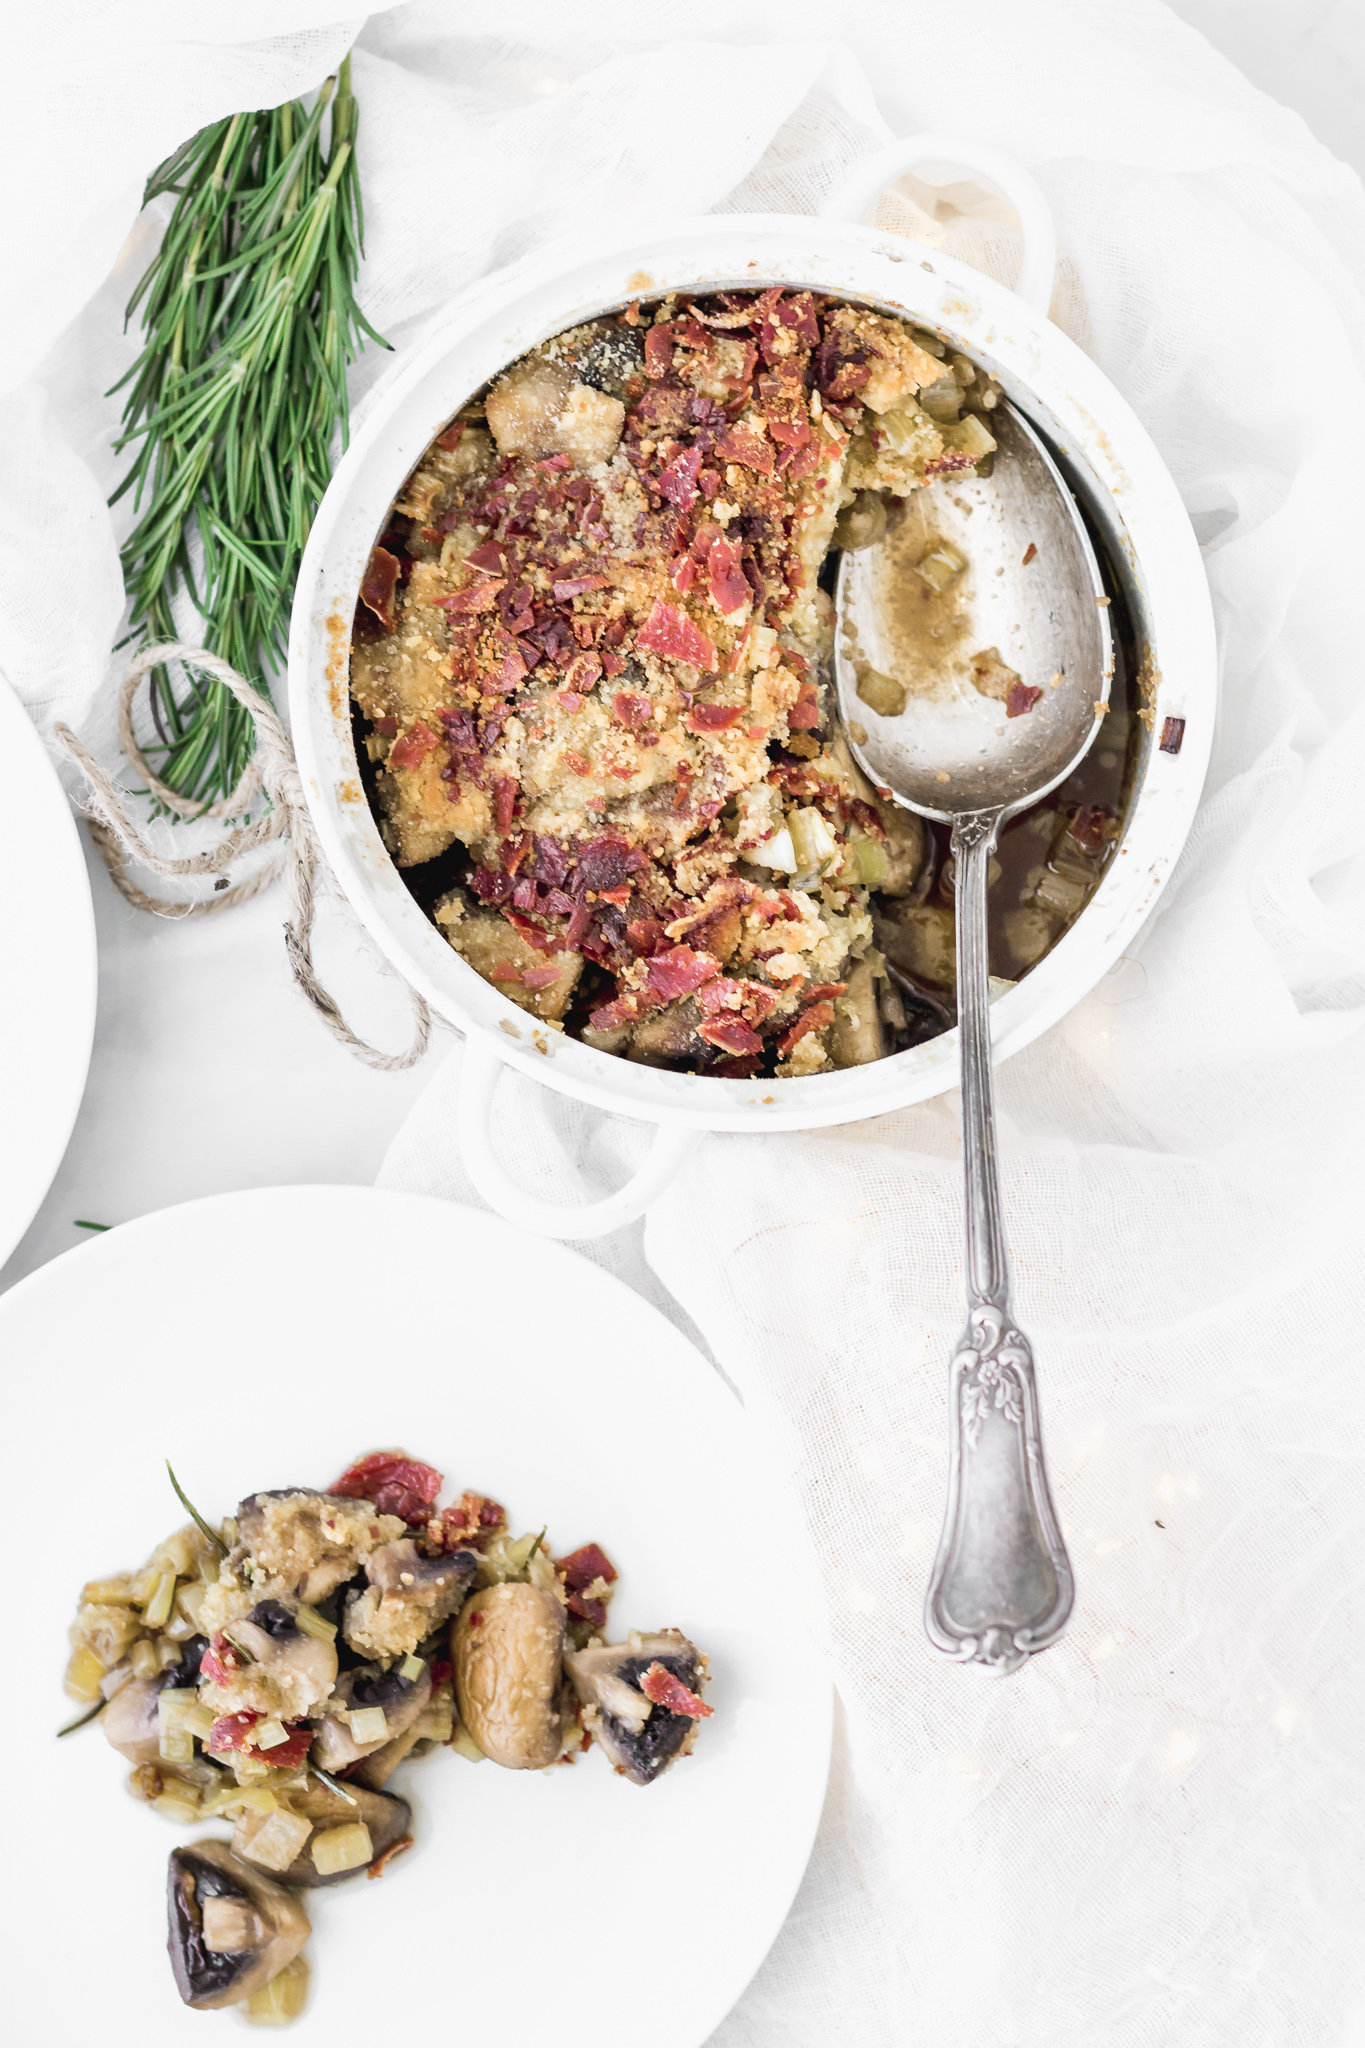 Leek and Mushroom Casserole with Crispy Serrano Ham